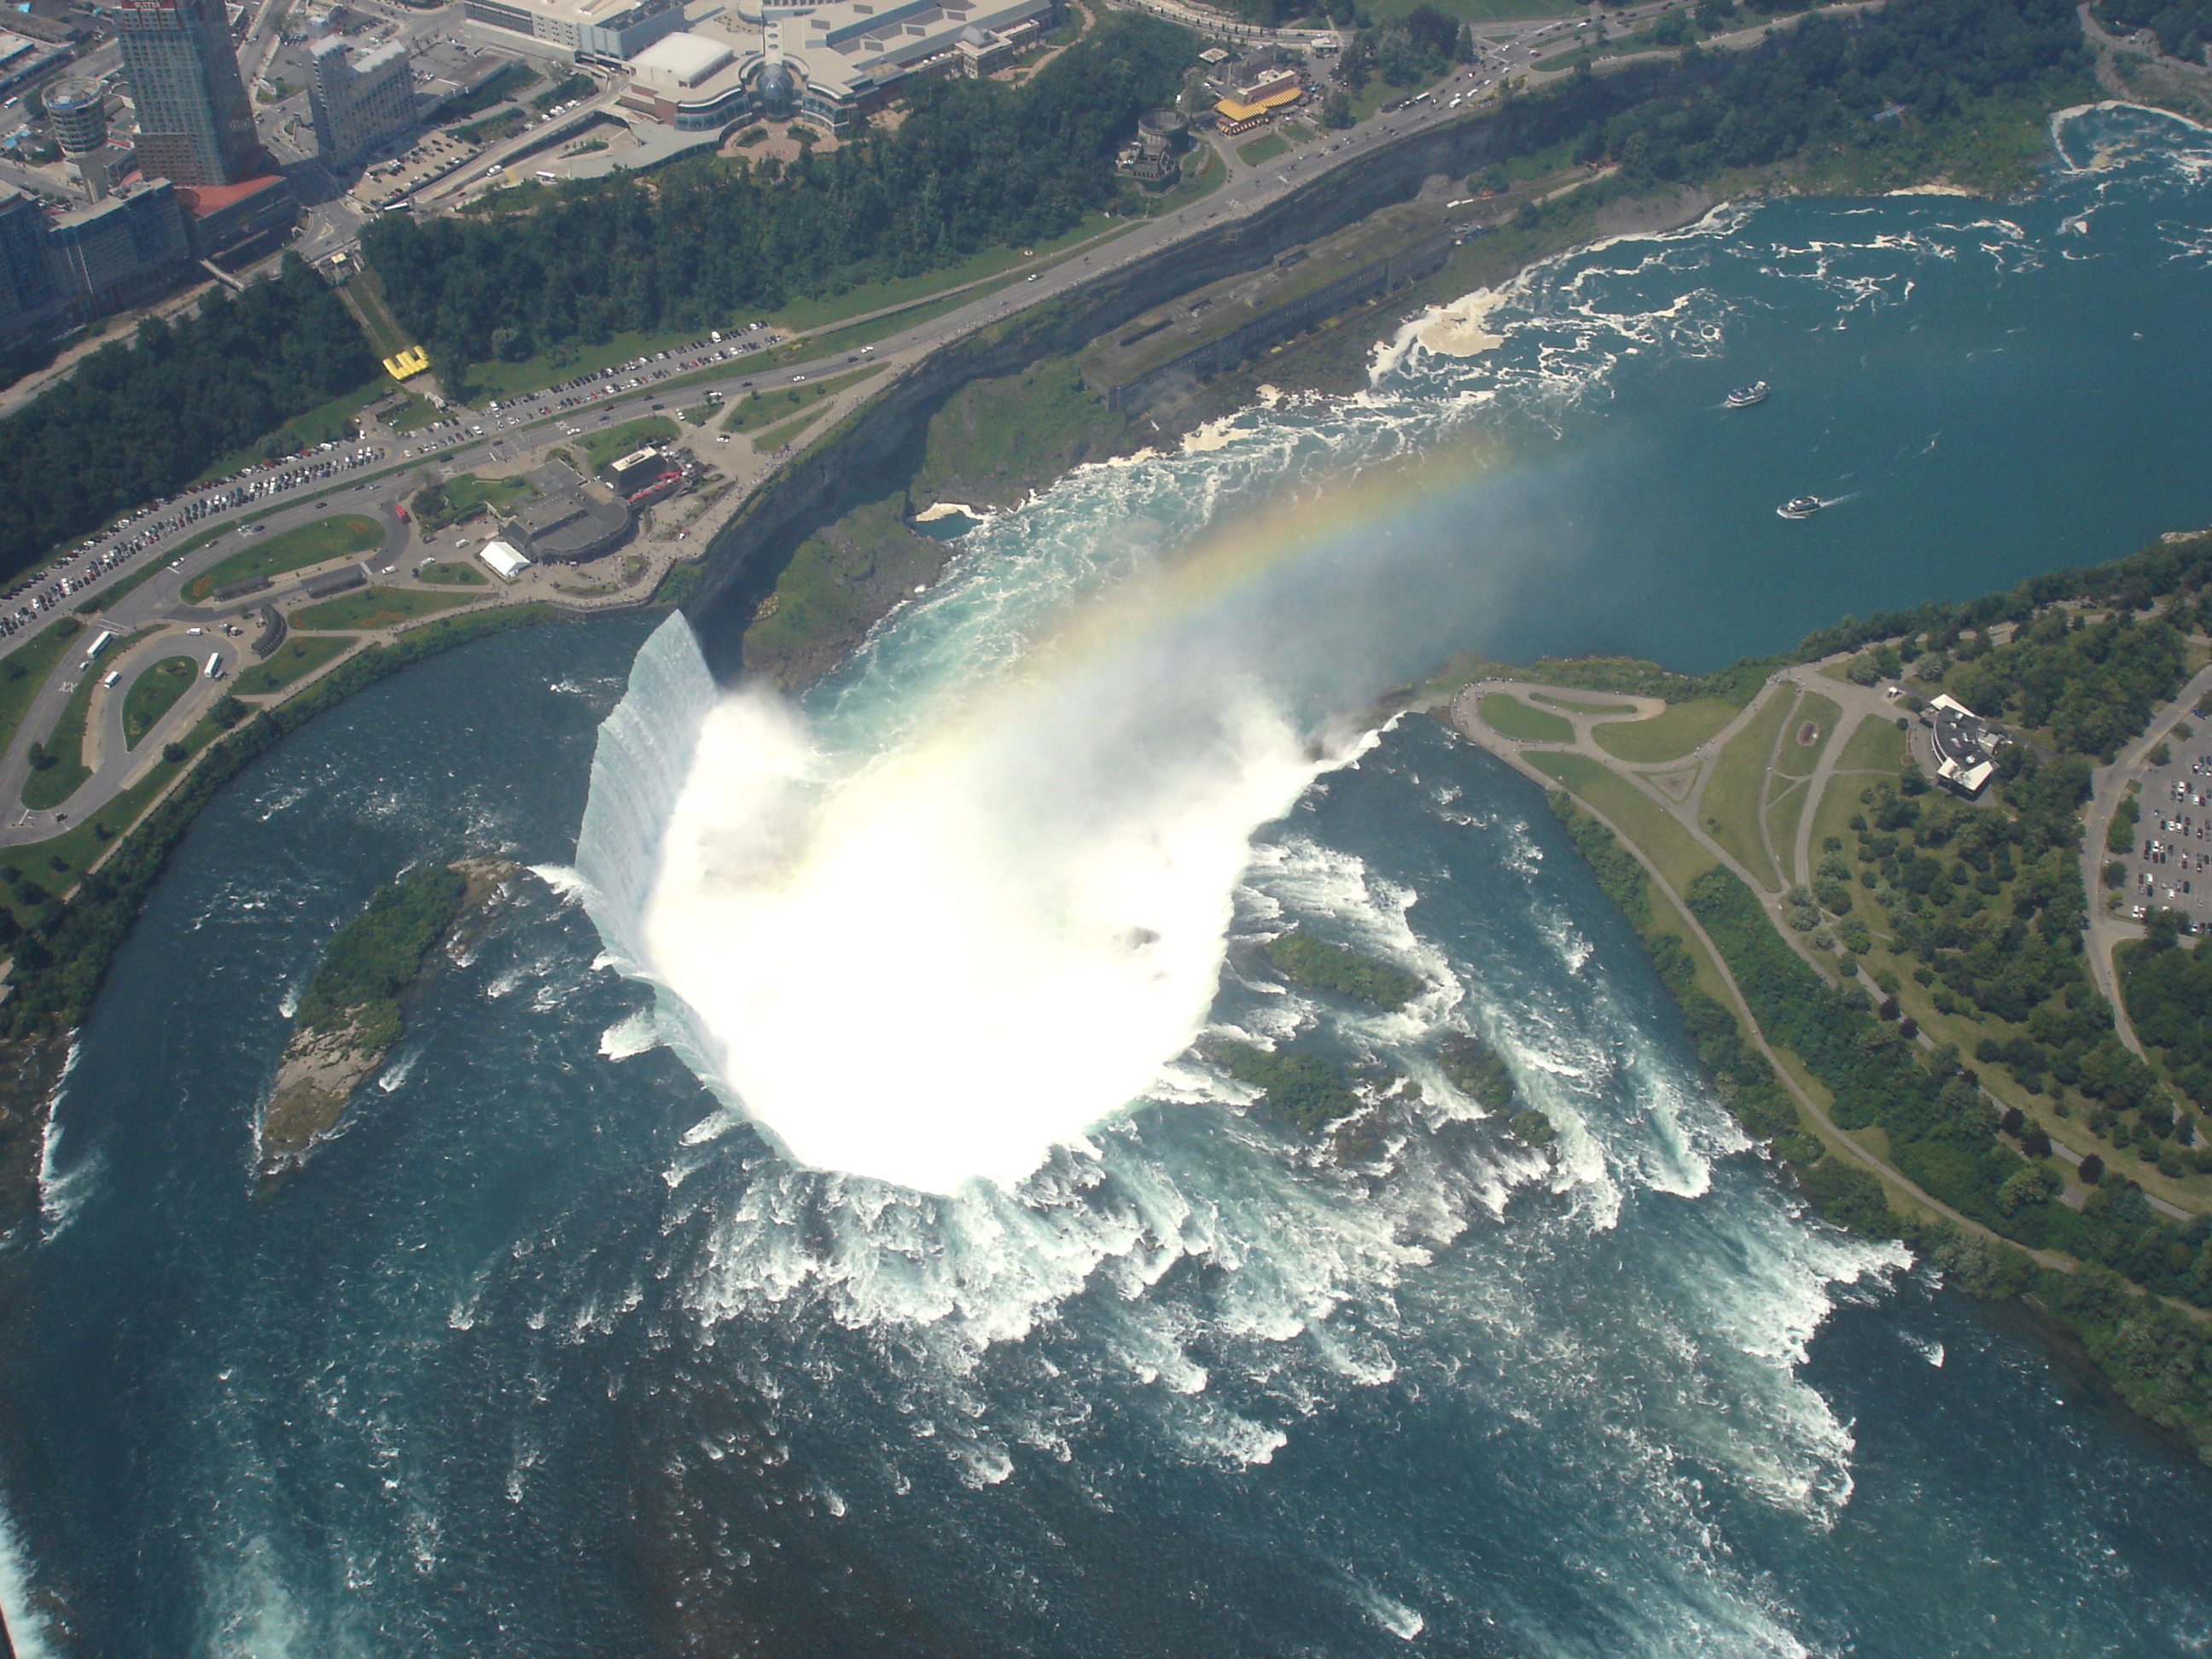 Niagara Falls Helicopter Tours From Toronto